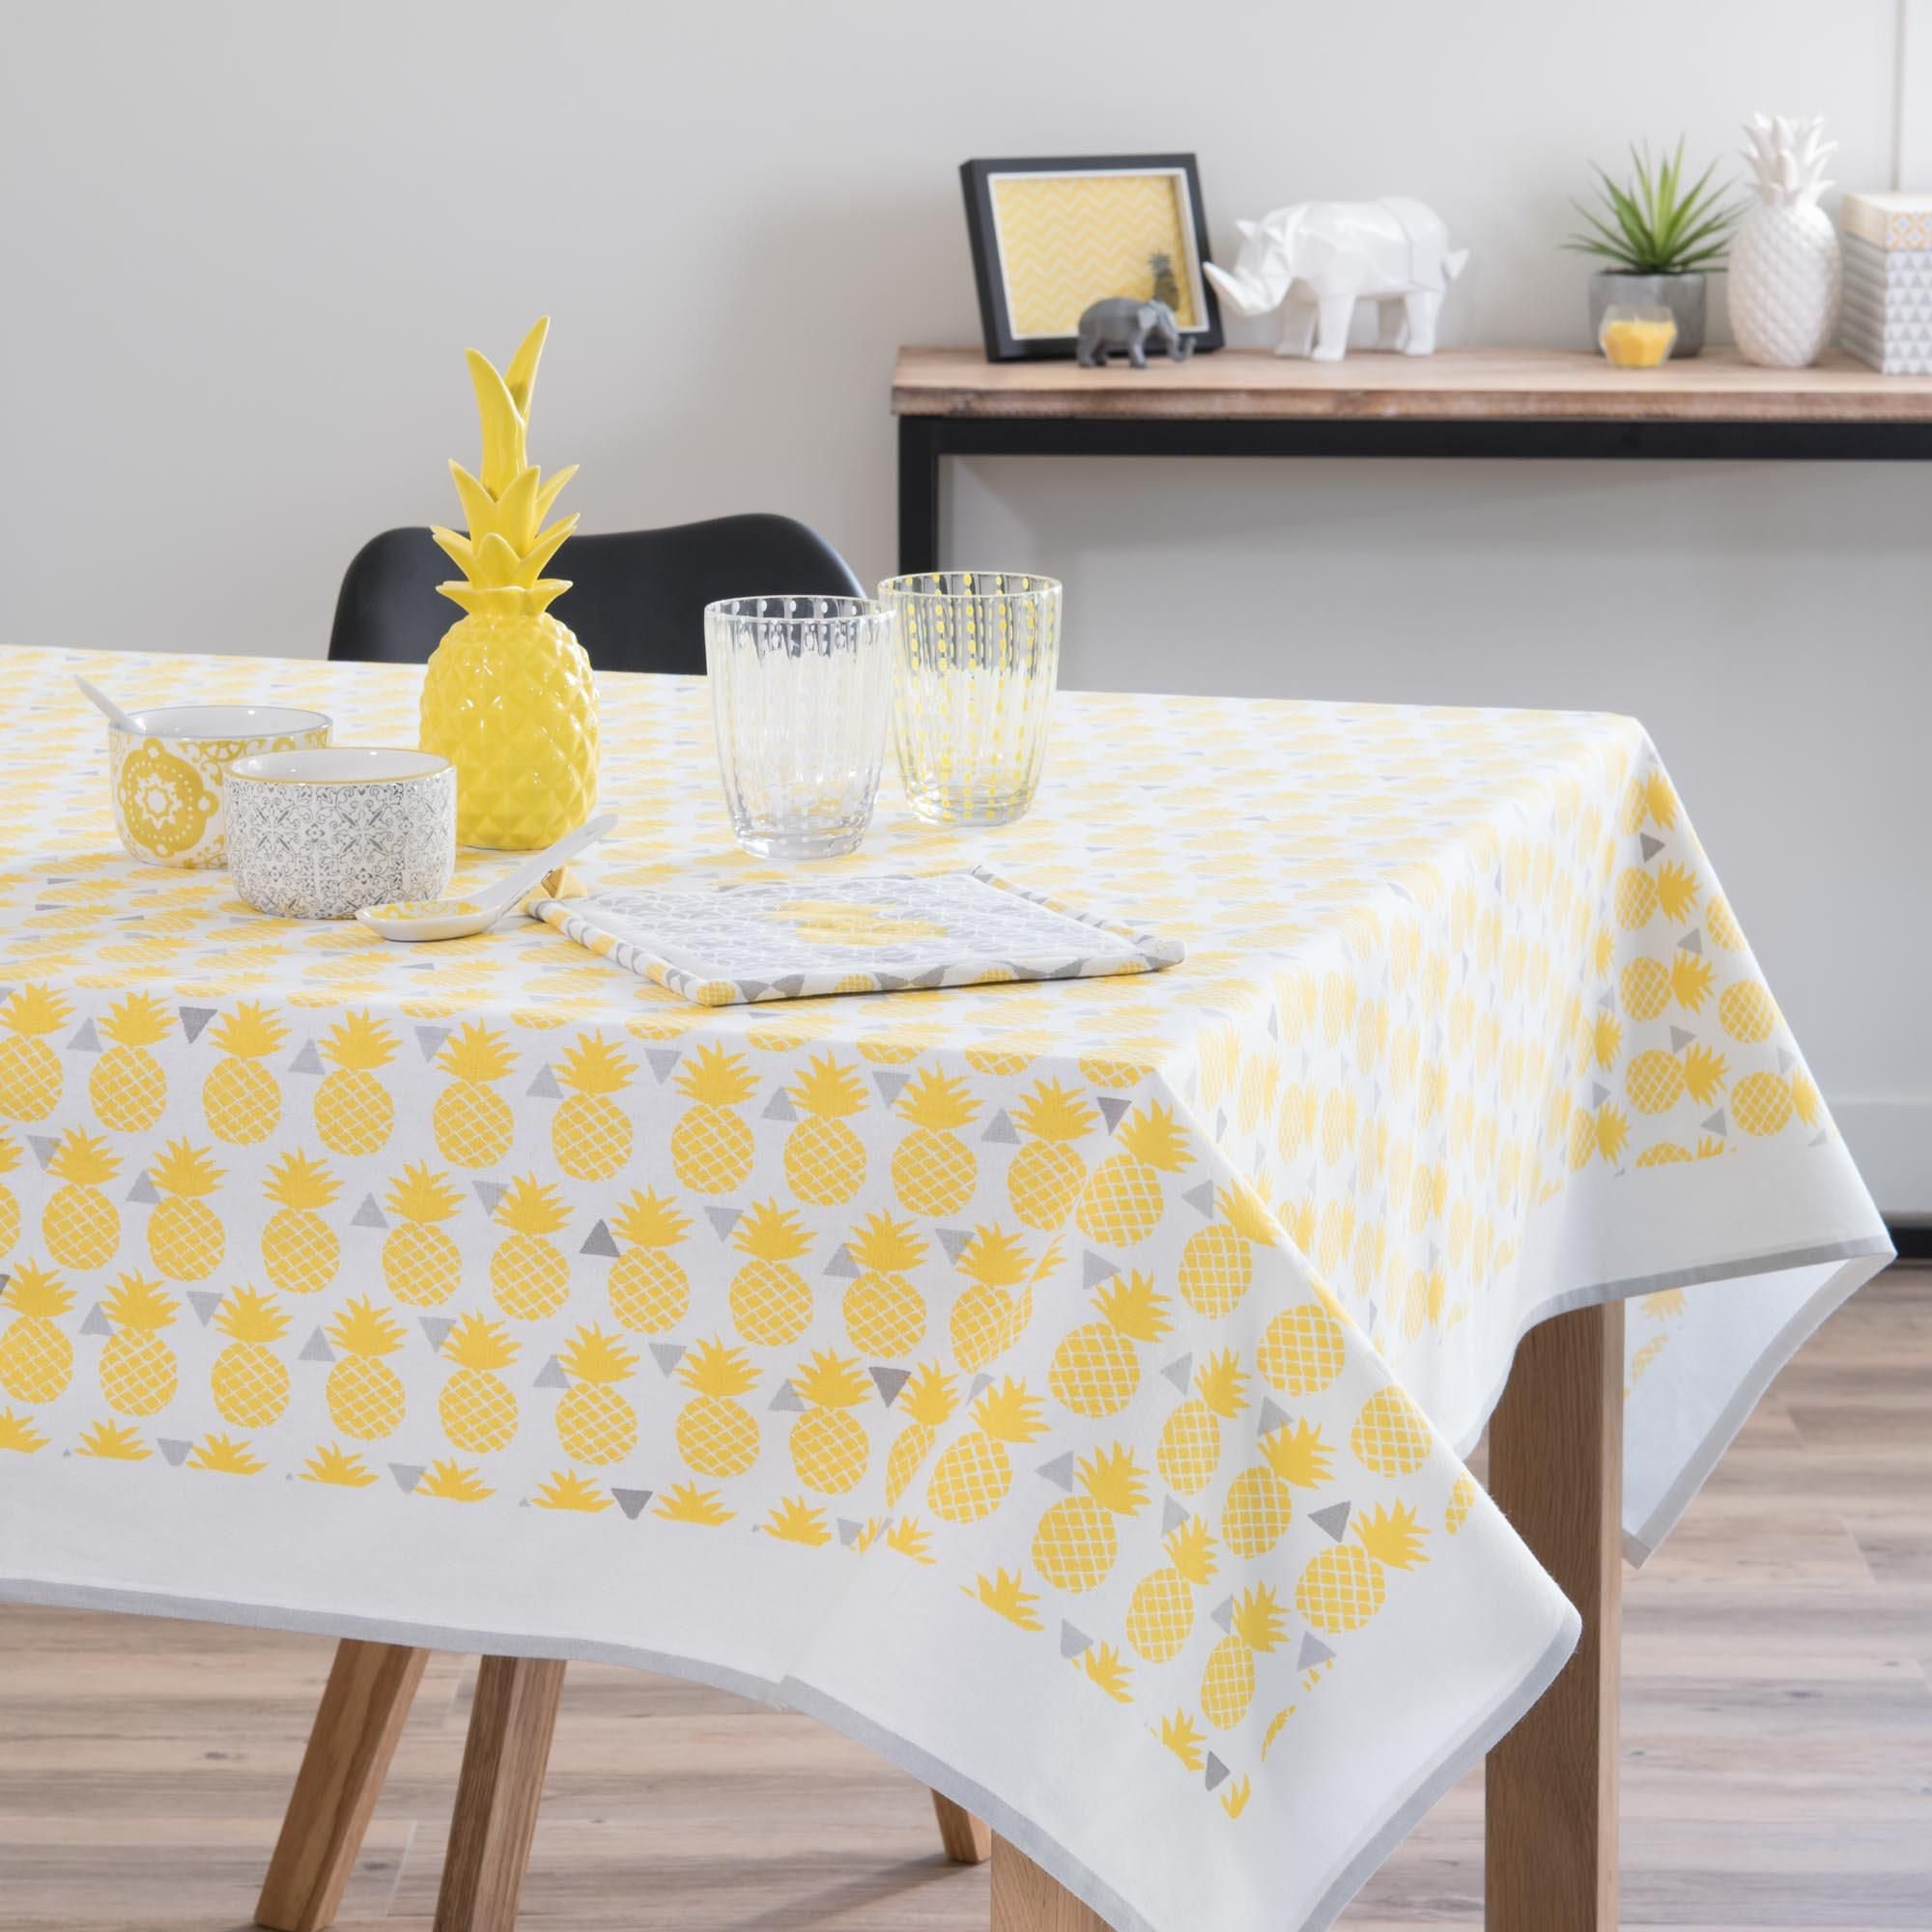 nappe en coton jaune 150 x 250 cm pinapple maisons du monde dining table pinterest. Black Bedroom Furniture Sets. Home Design Ideas